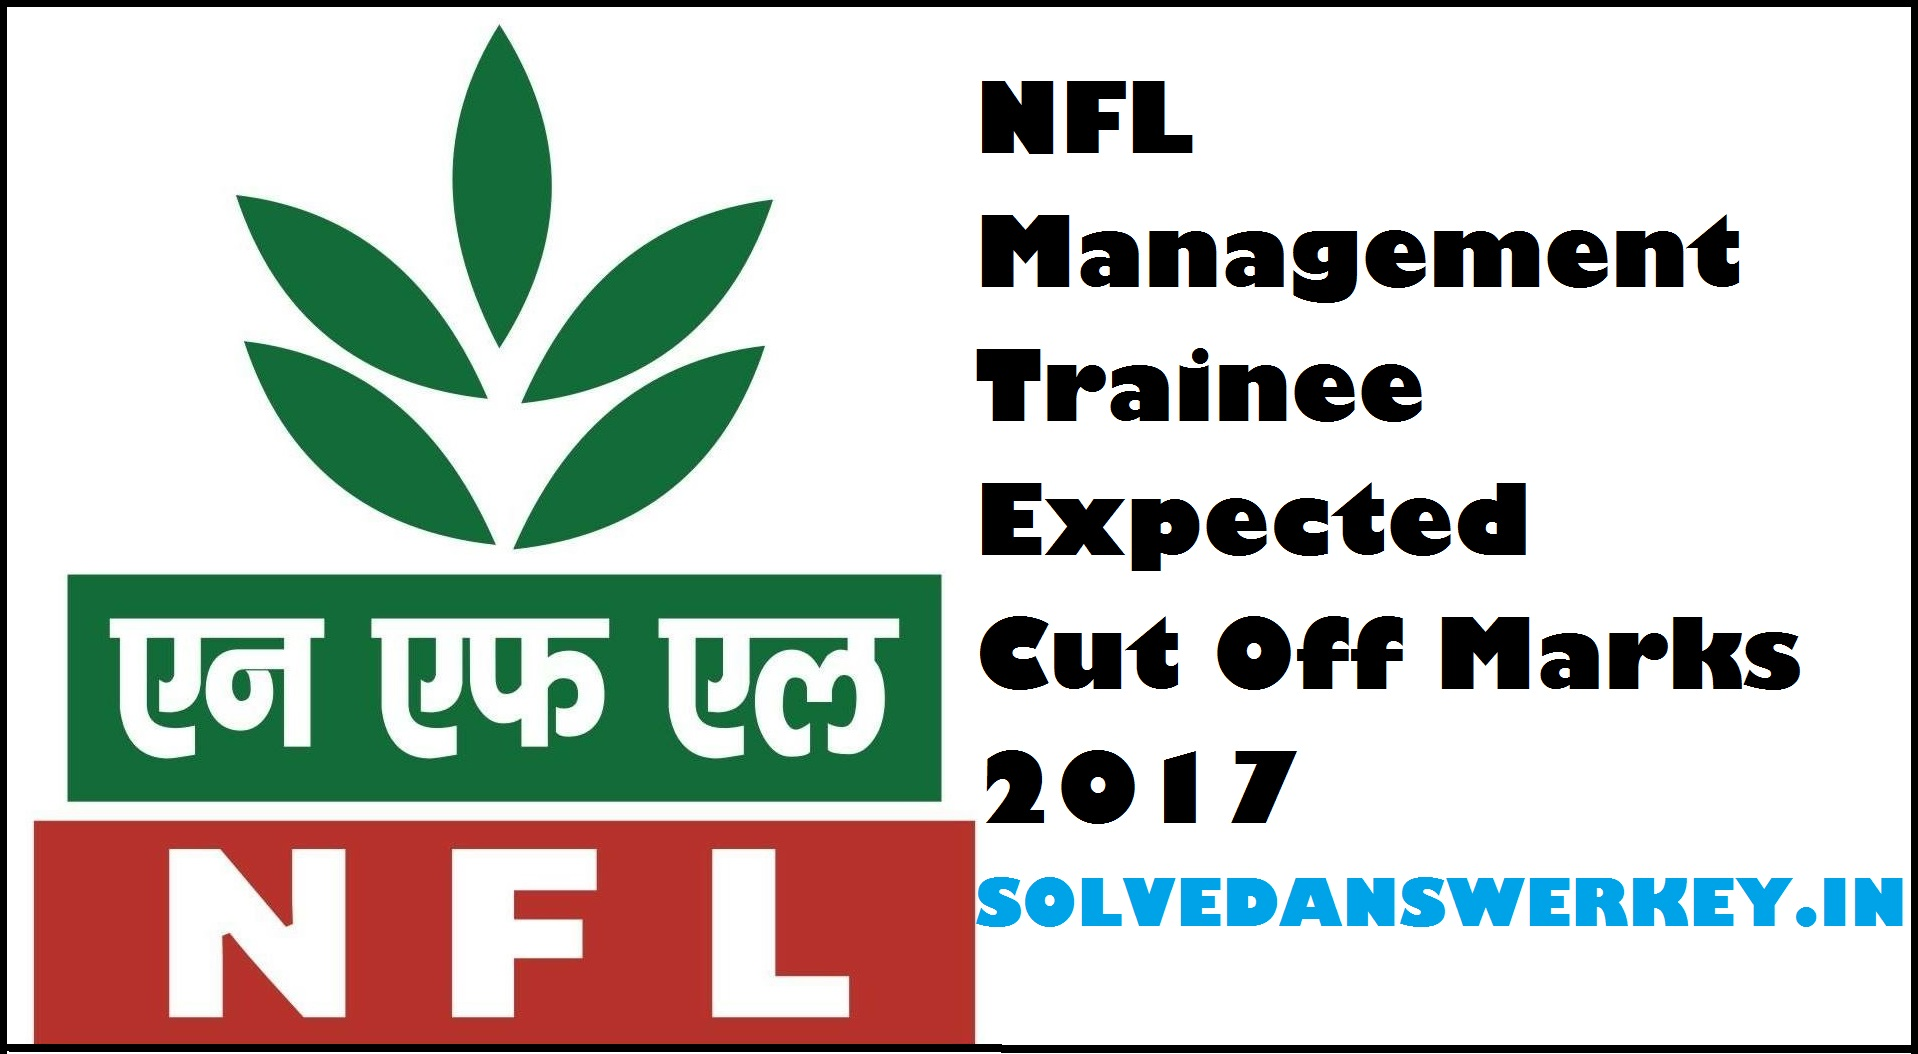 NFL Management Trainee Expected Cut Off Marks 2017